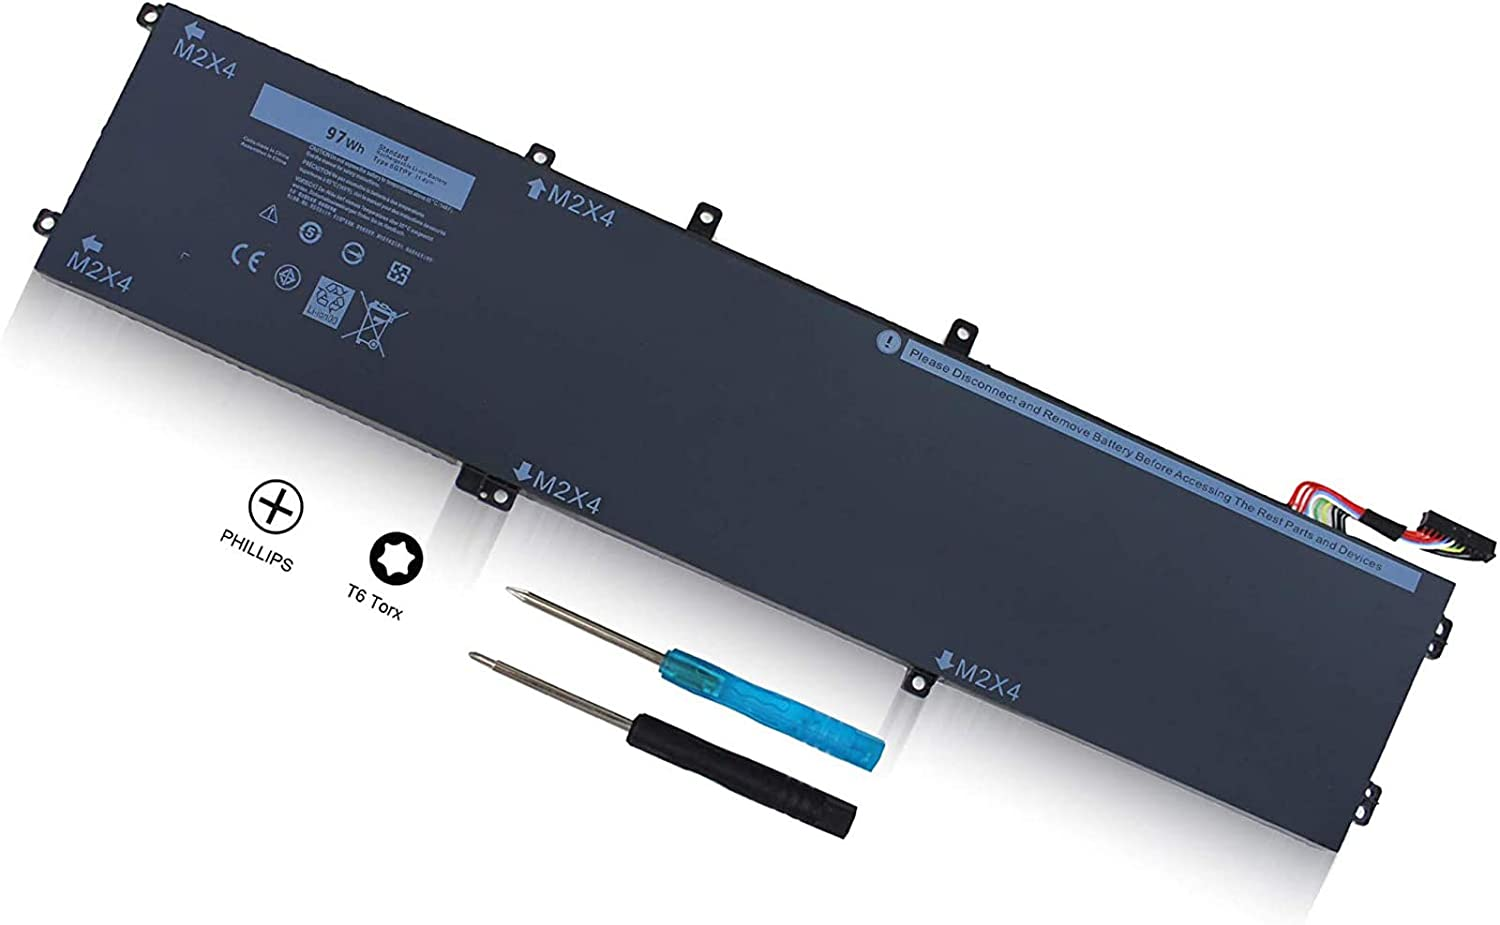 6GTPY 11.4V 97WH Battery for Dell Limited time cheap Nashville-Davidson Mall sale XPS 15 9560 P56 9550 P56F 9570